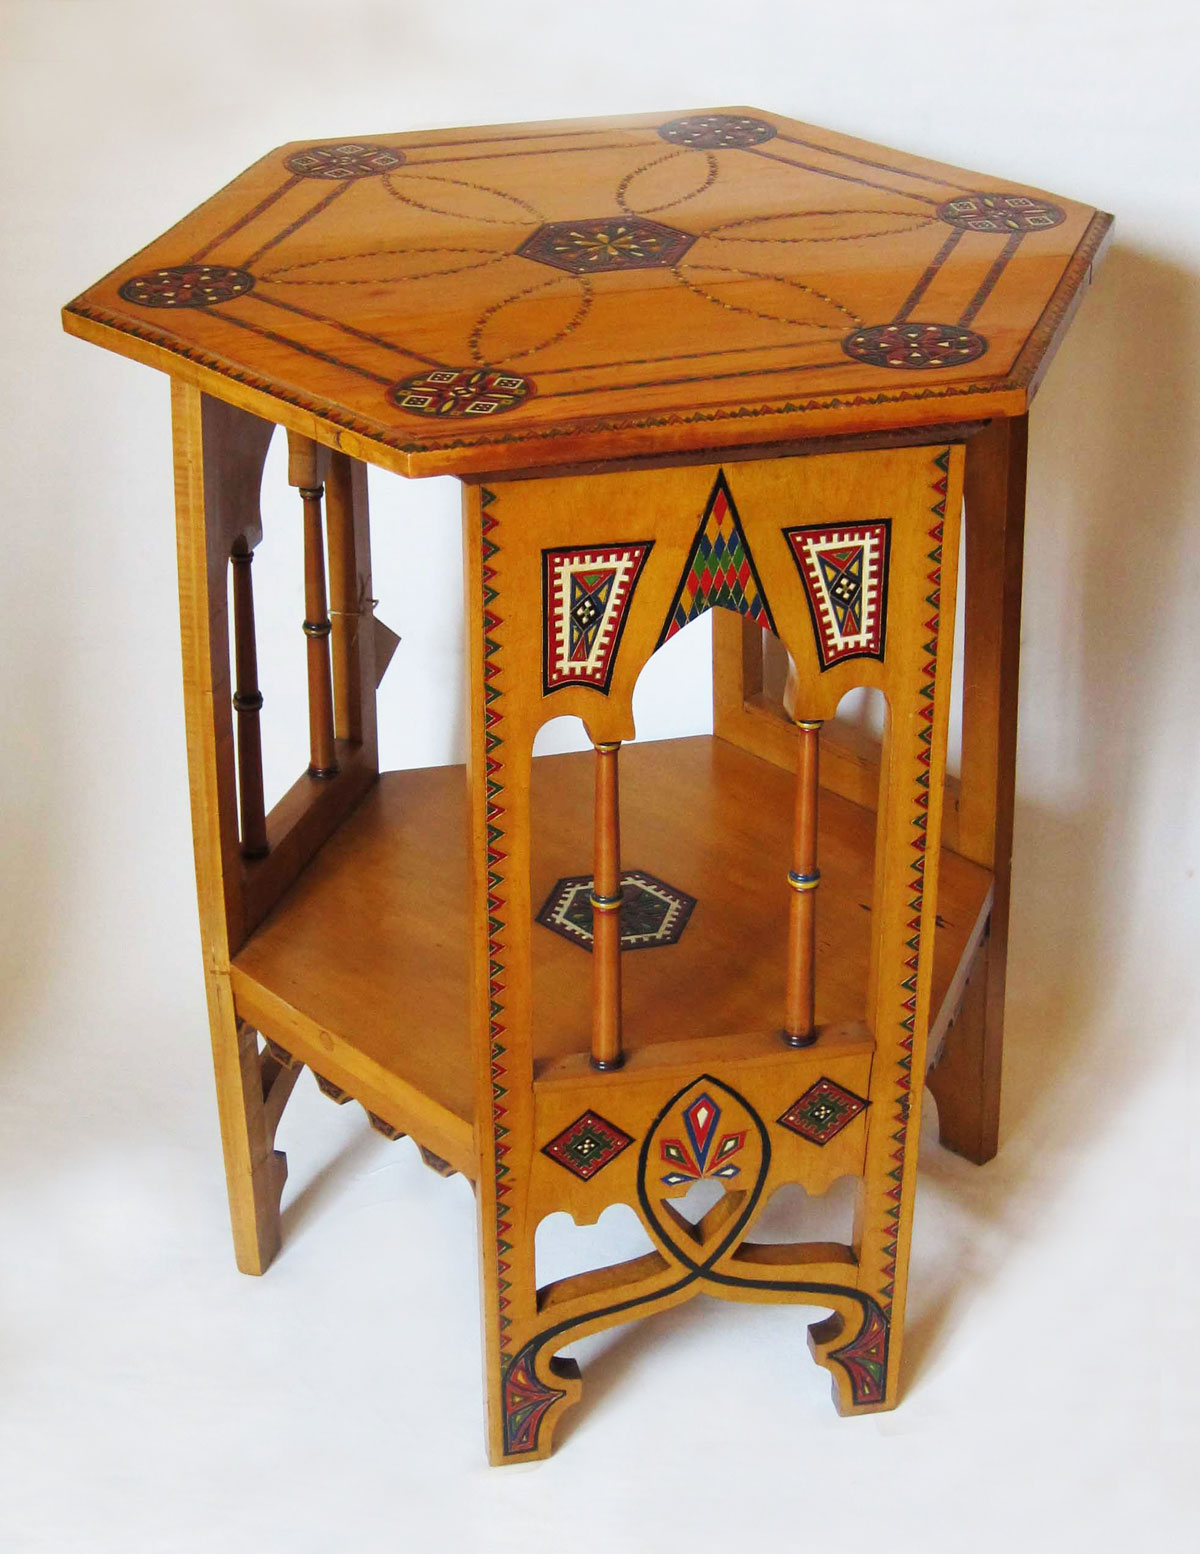 A Hand Painted Orientalist Table Martinos # Tabl Ferforge Modele